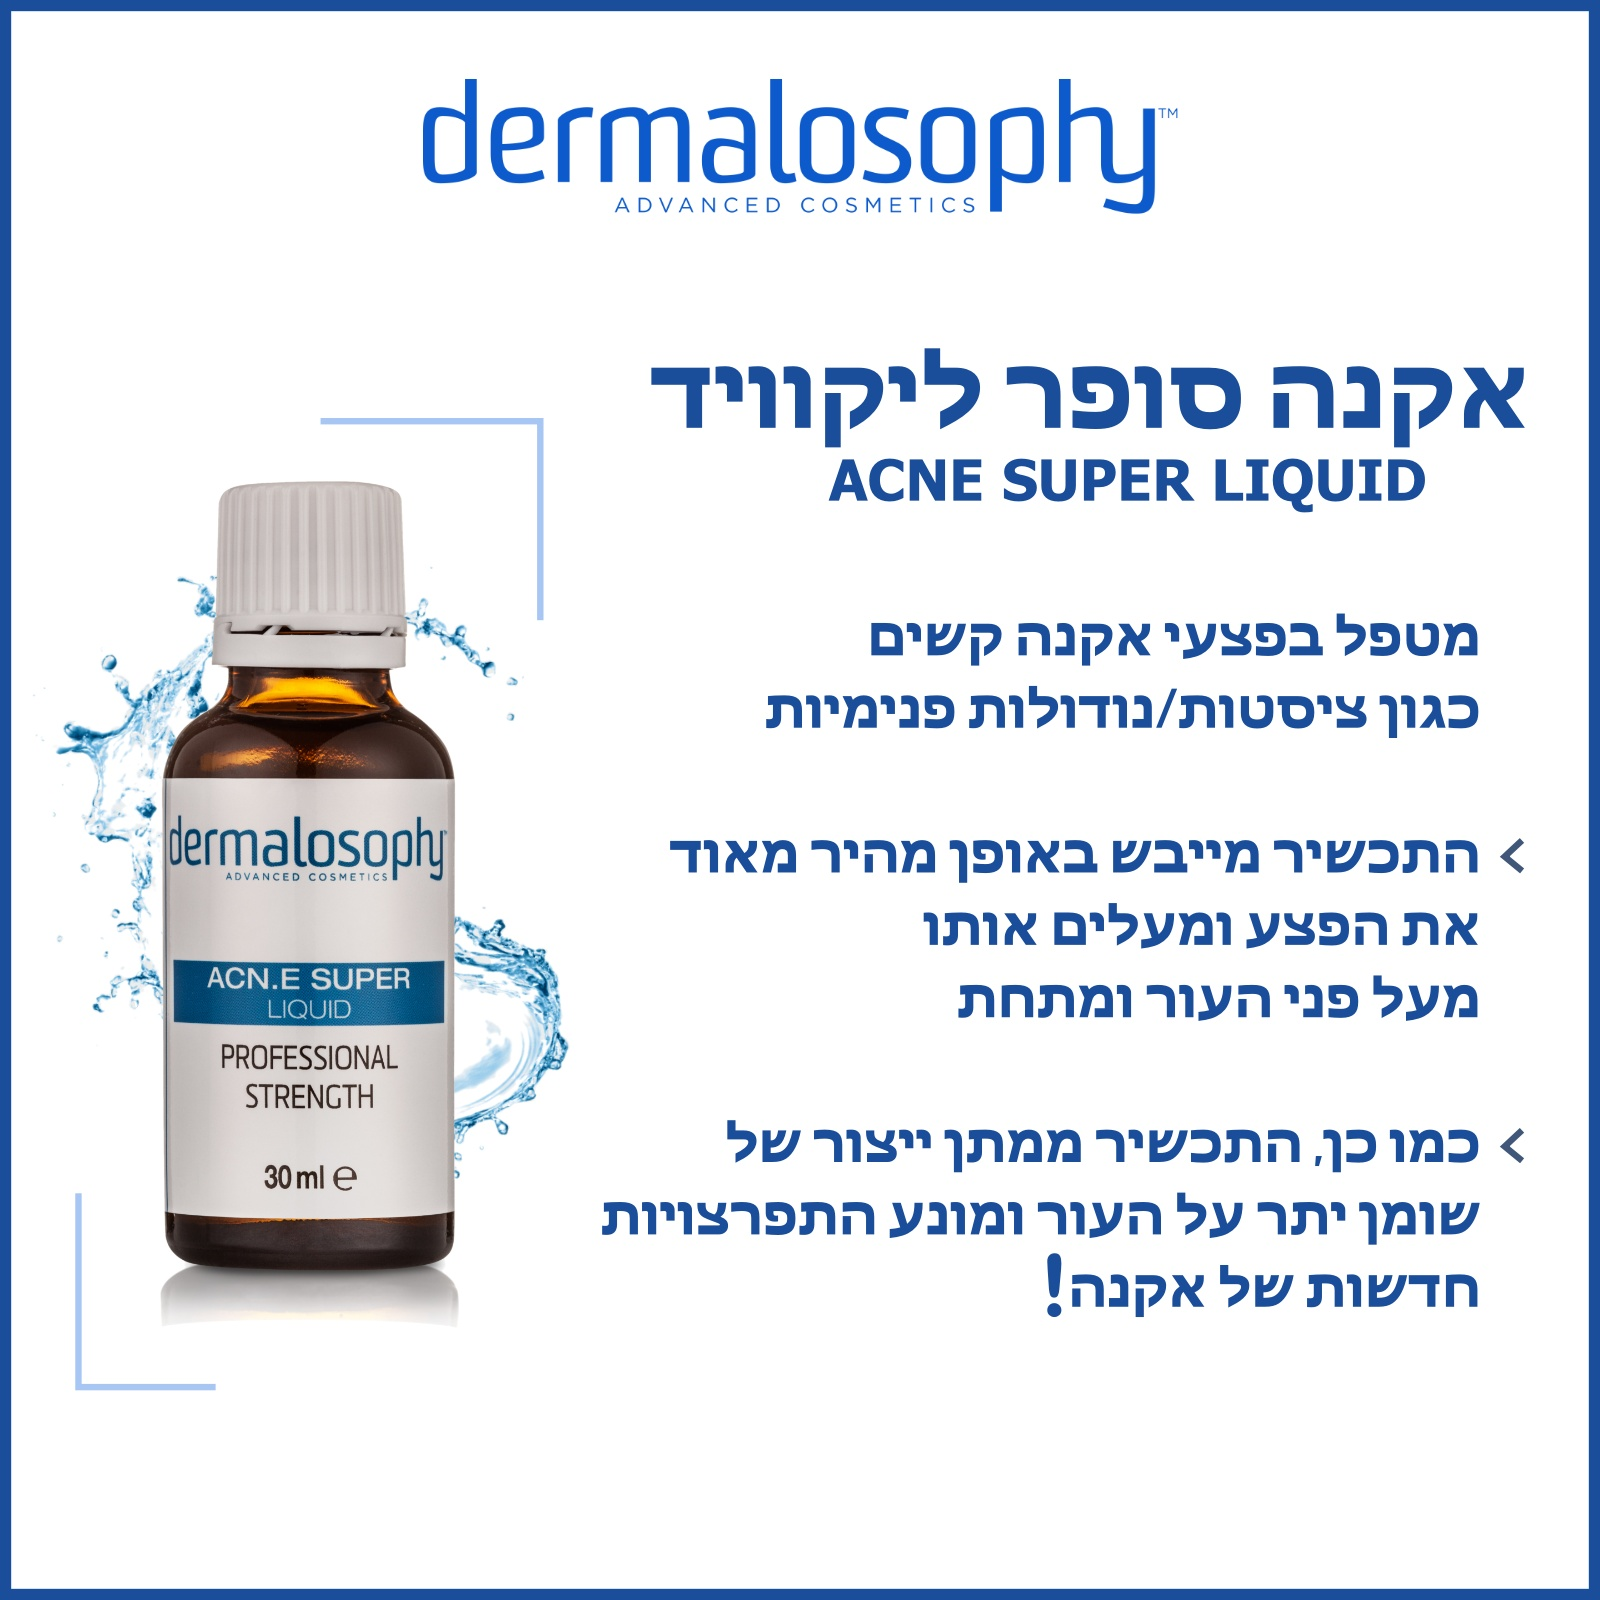 אקנה סופר ליקוויד דרמלוסופי ACNE SIPER LIQUID לטיפול בפצעים תת עוריים